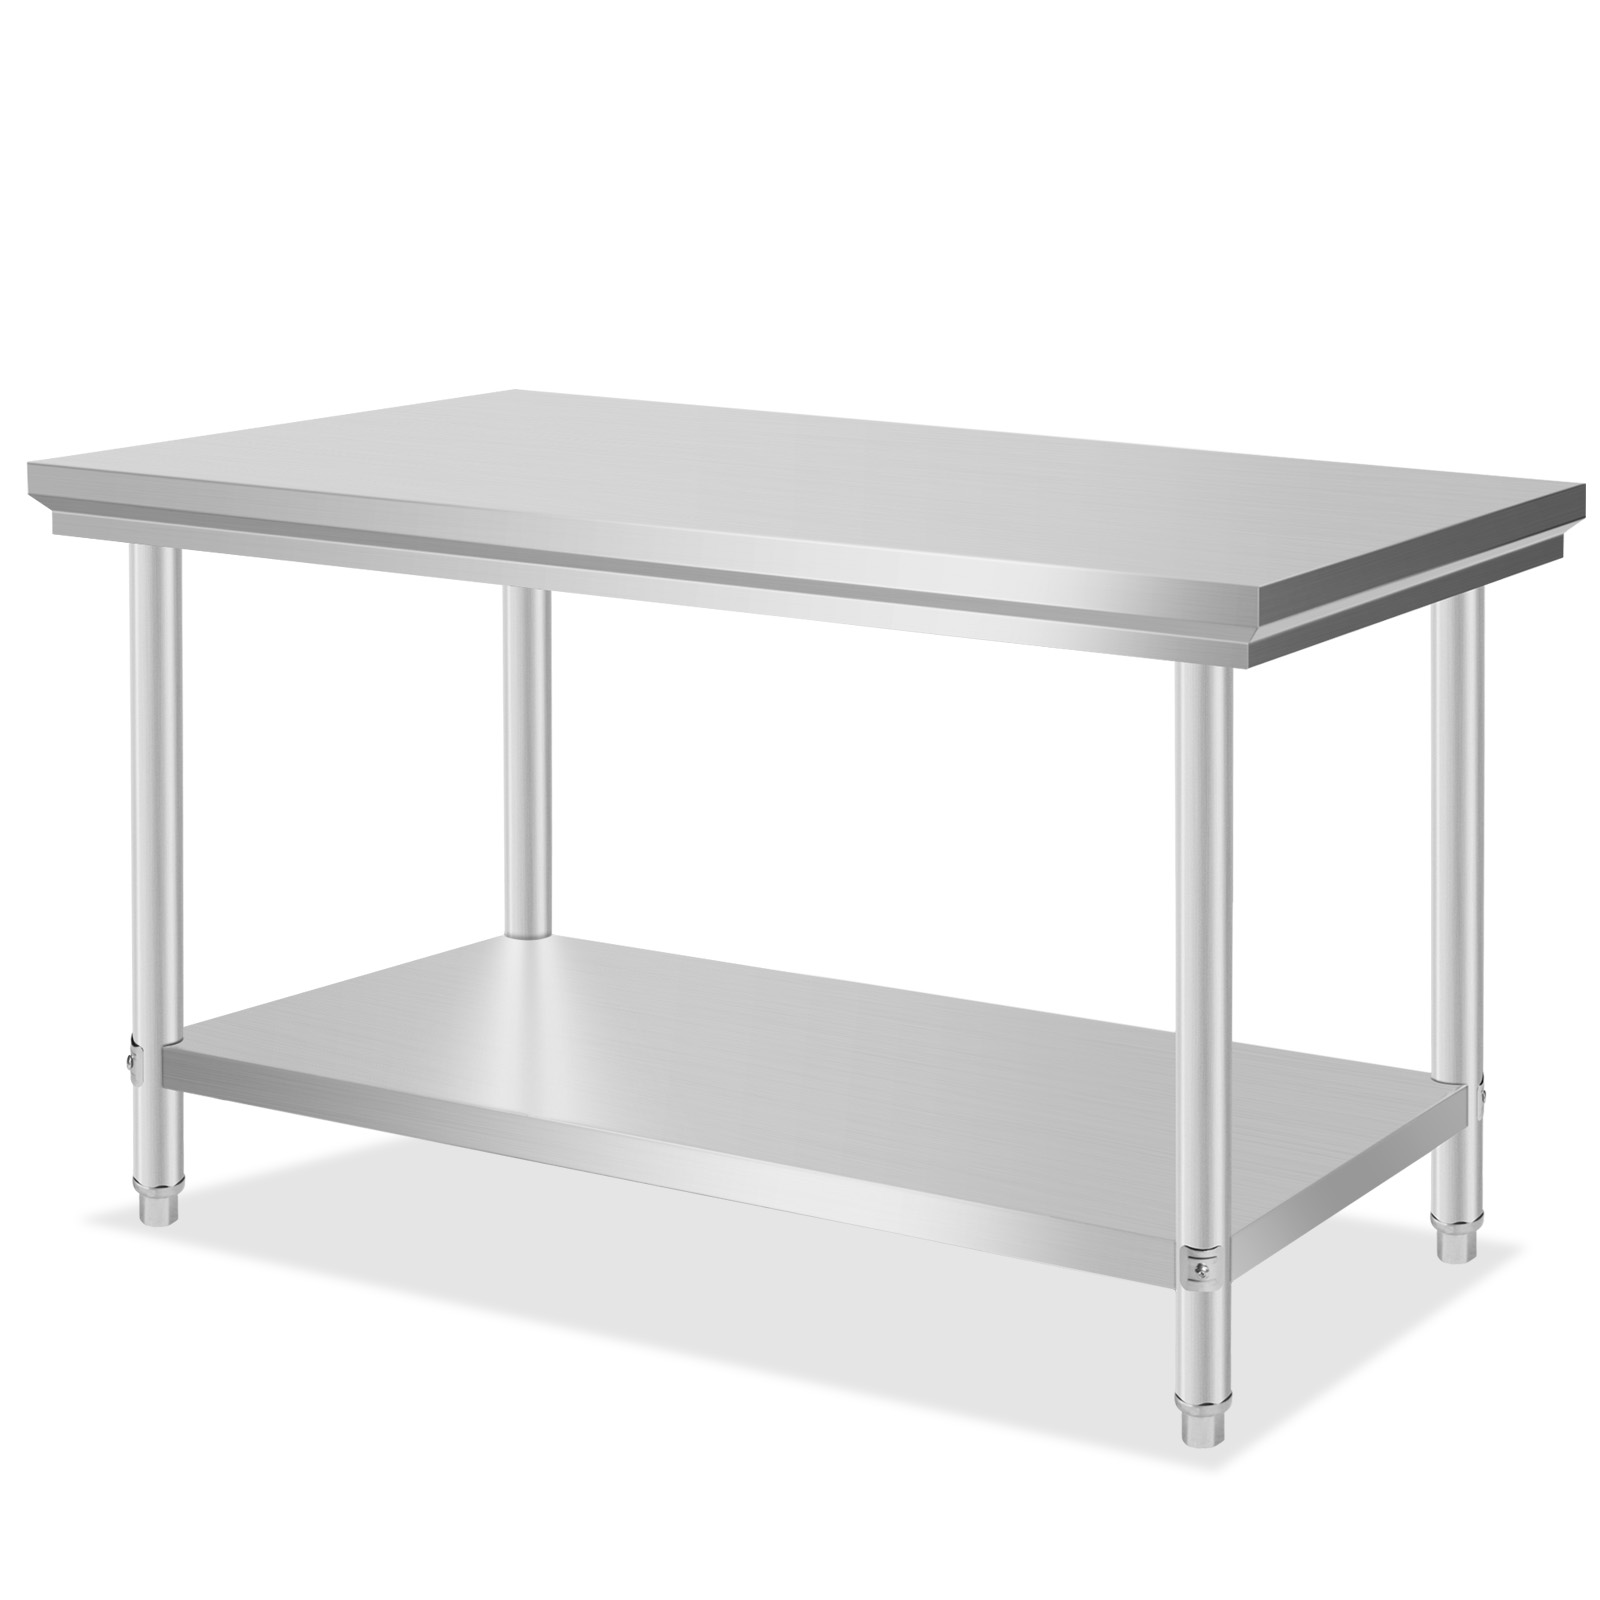 1219mm x 762mm commercial stainless steel kitchen work - Stainless kitchen table ...